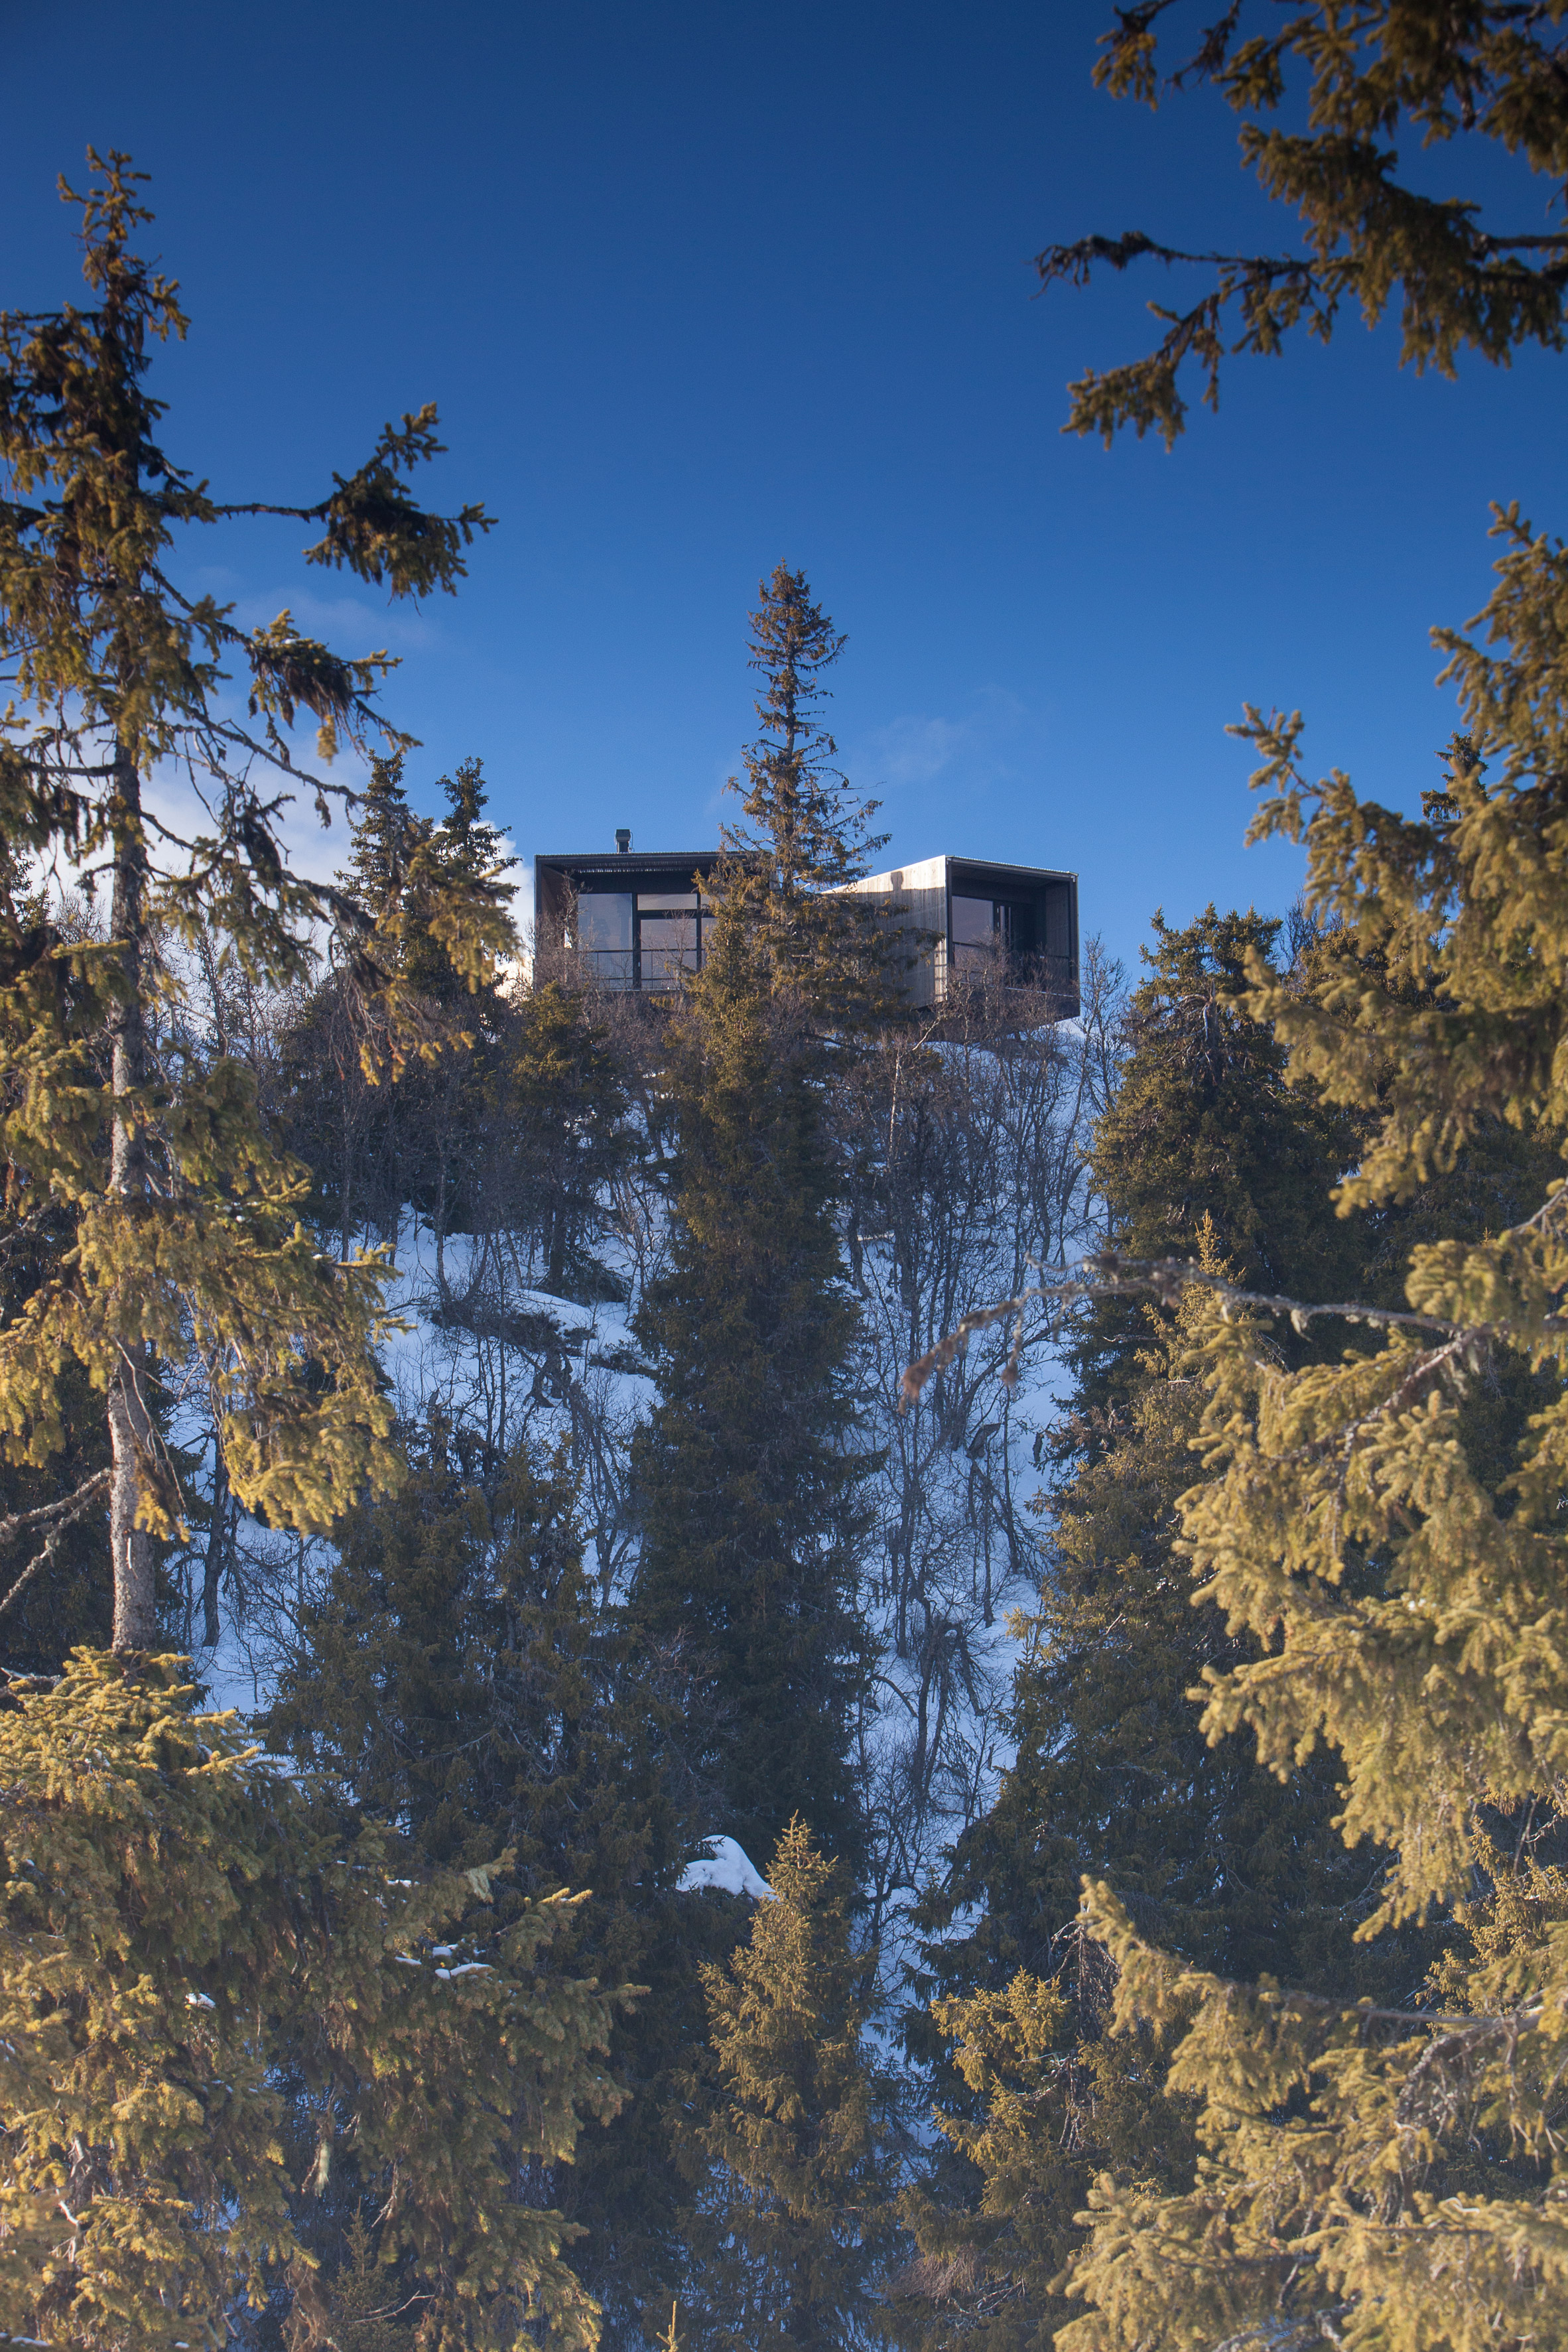 Lund Hagem installs Y-shaped cabin on a hilltop overlooking Norwegian ski resort